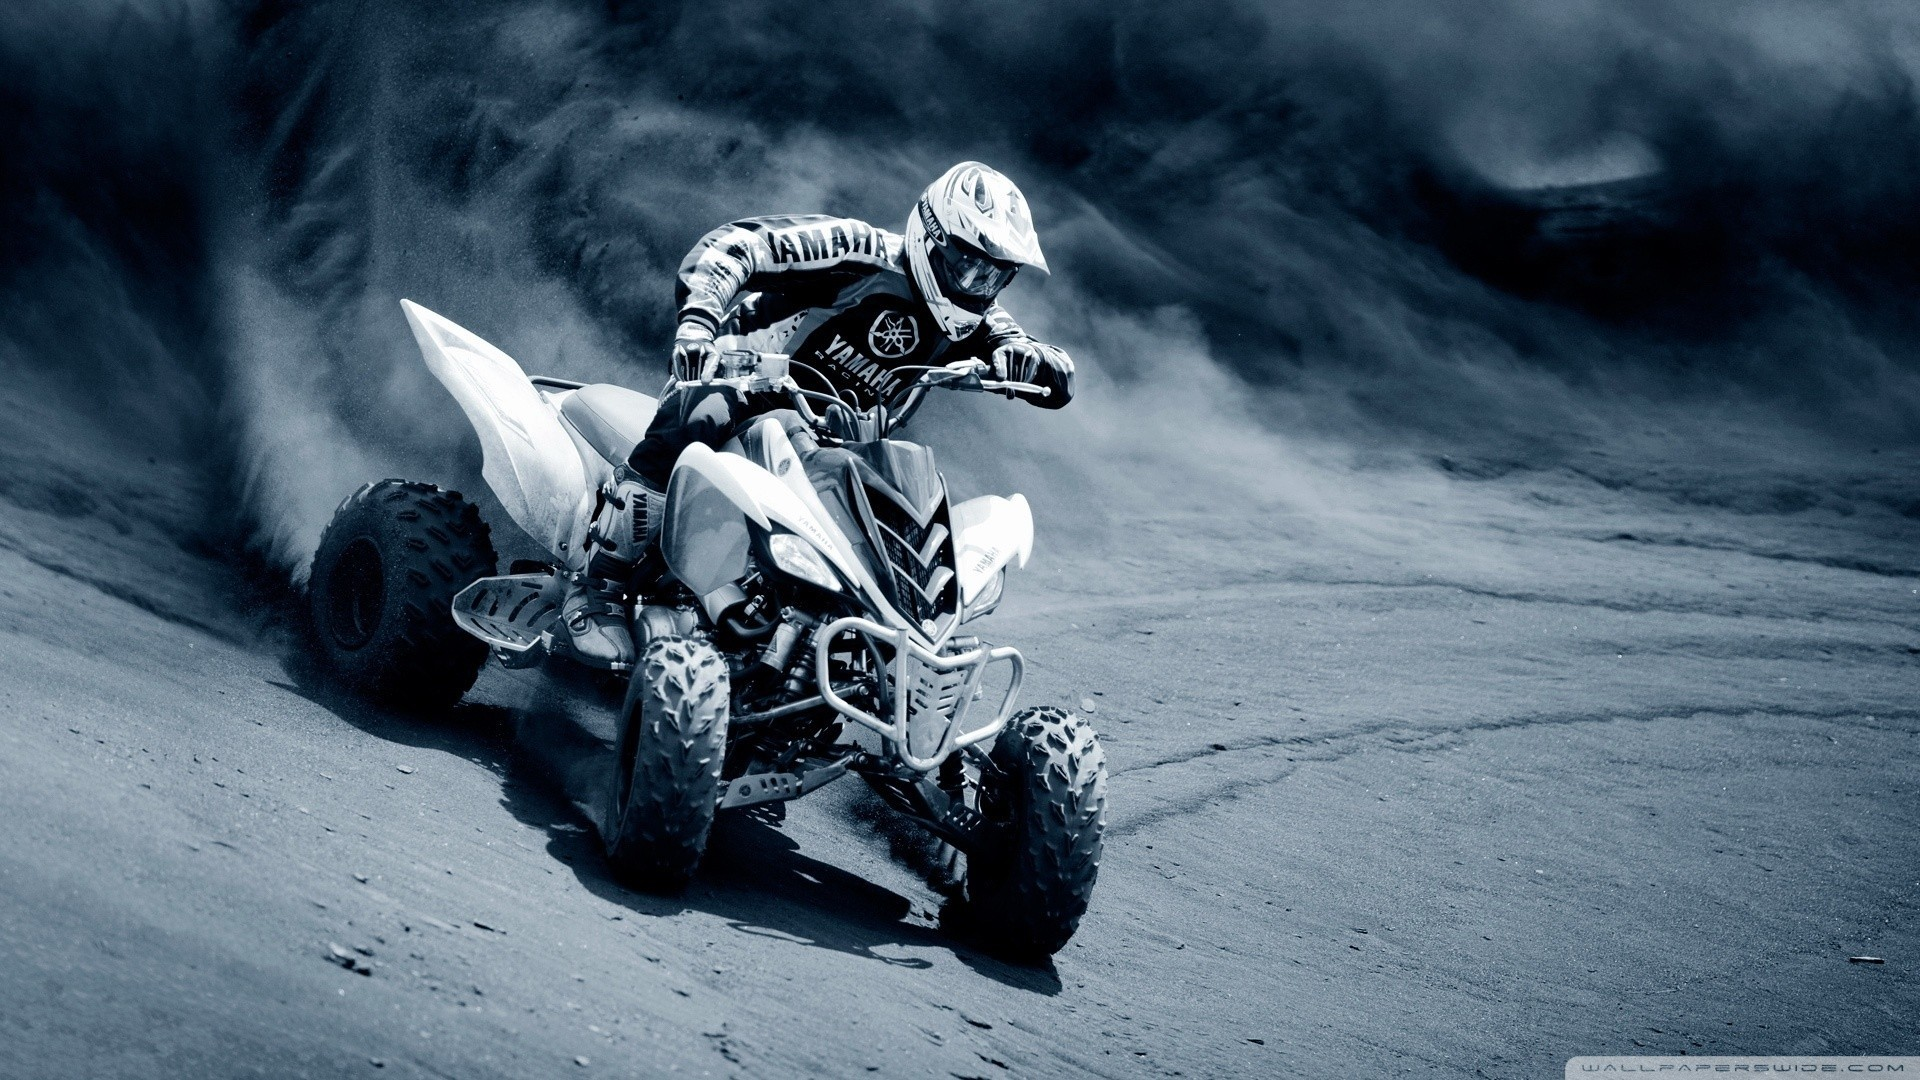 cars racing ATV HD Wallpaper